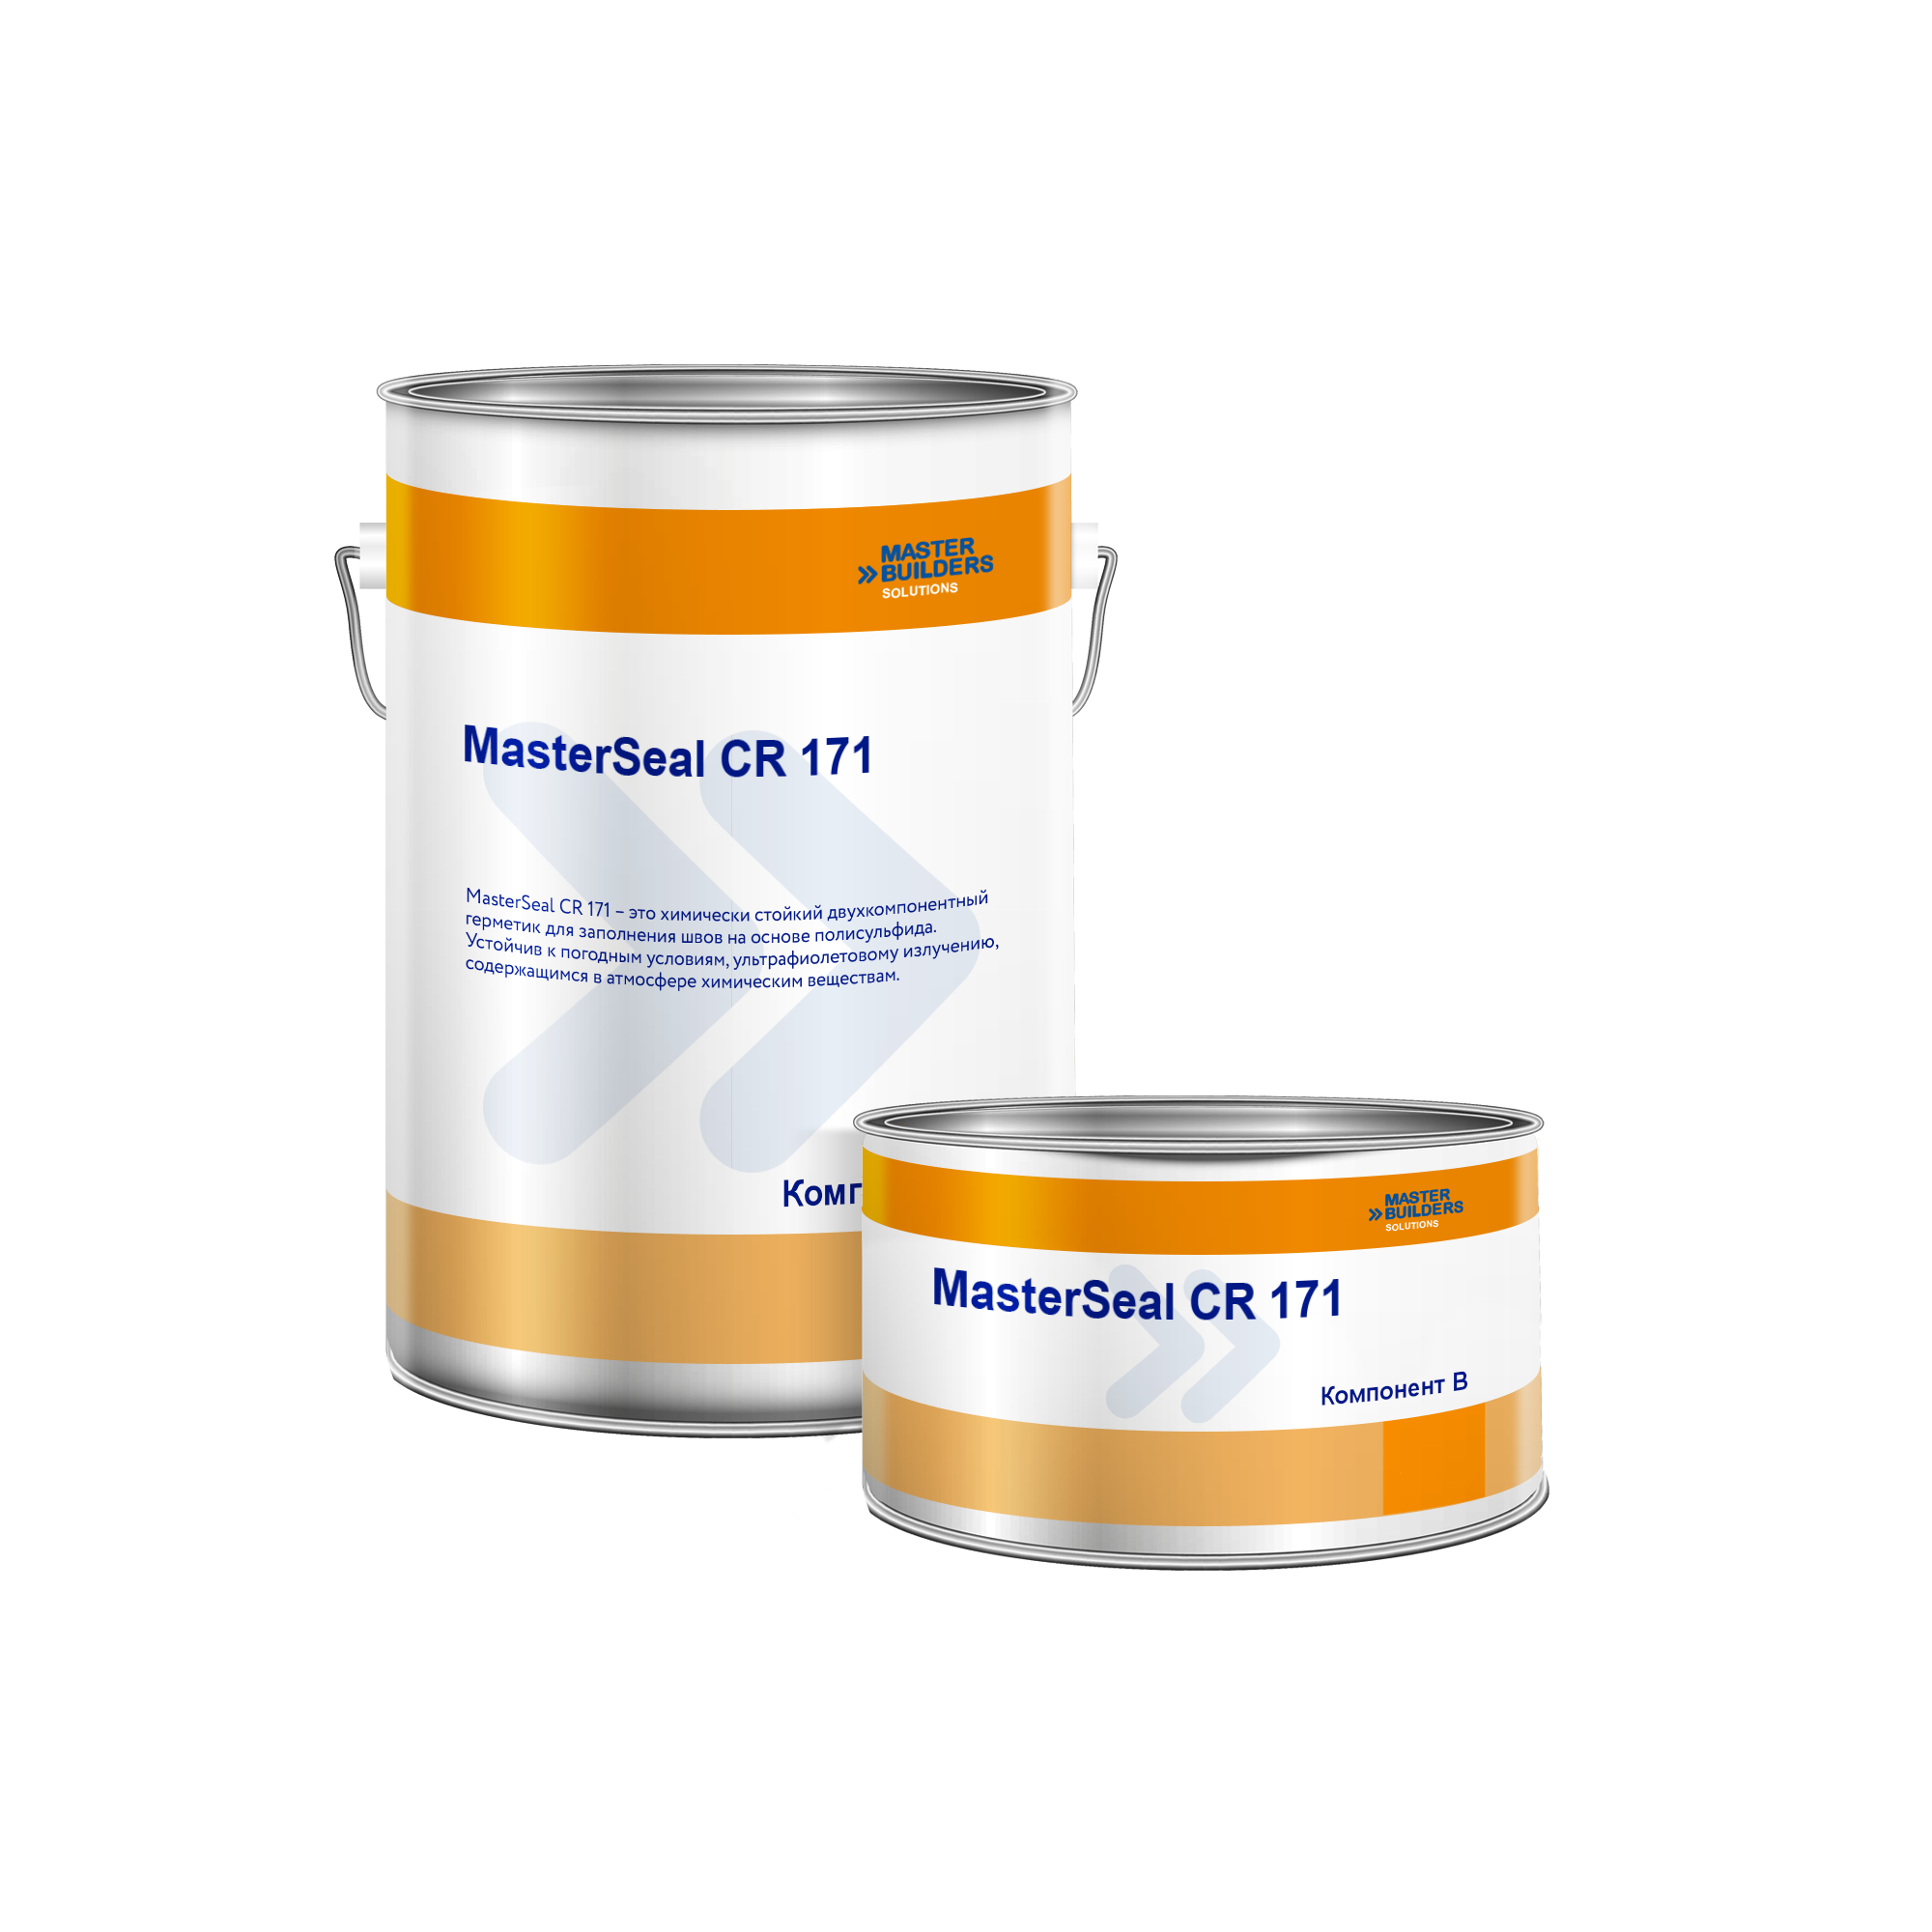 MasterSeal CR 171